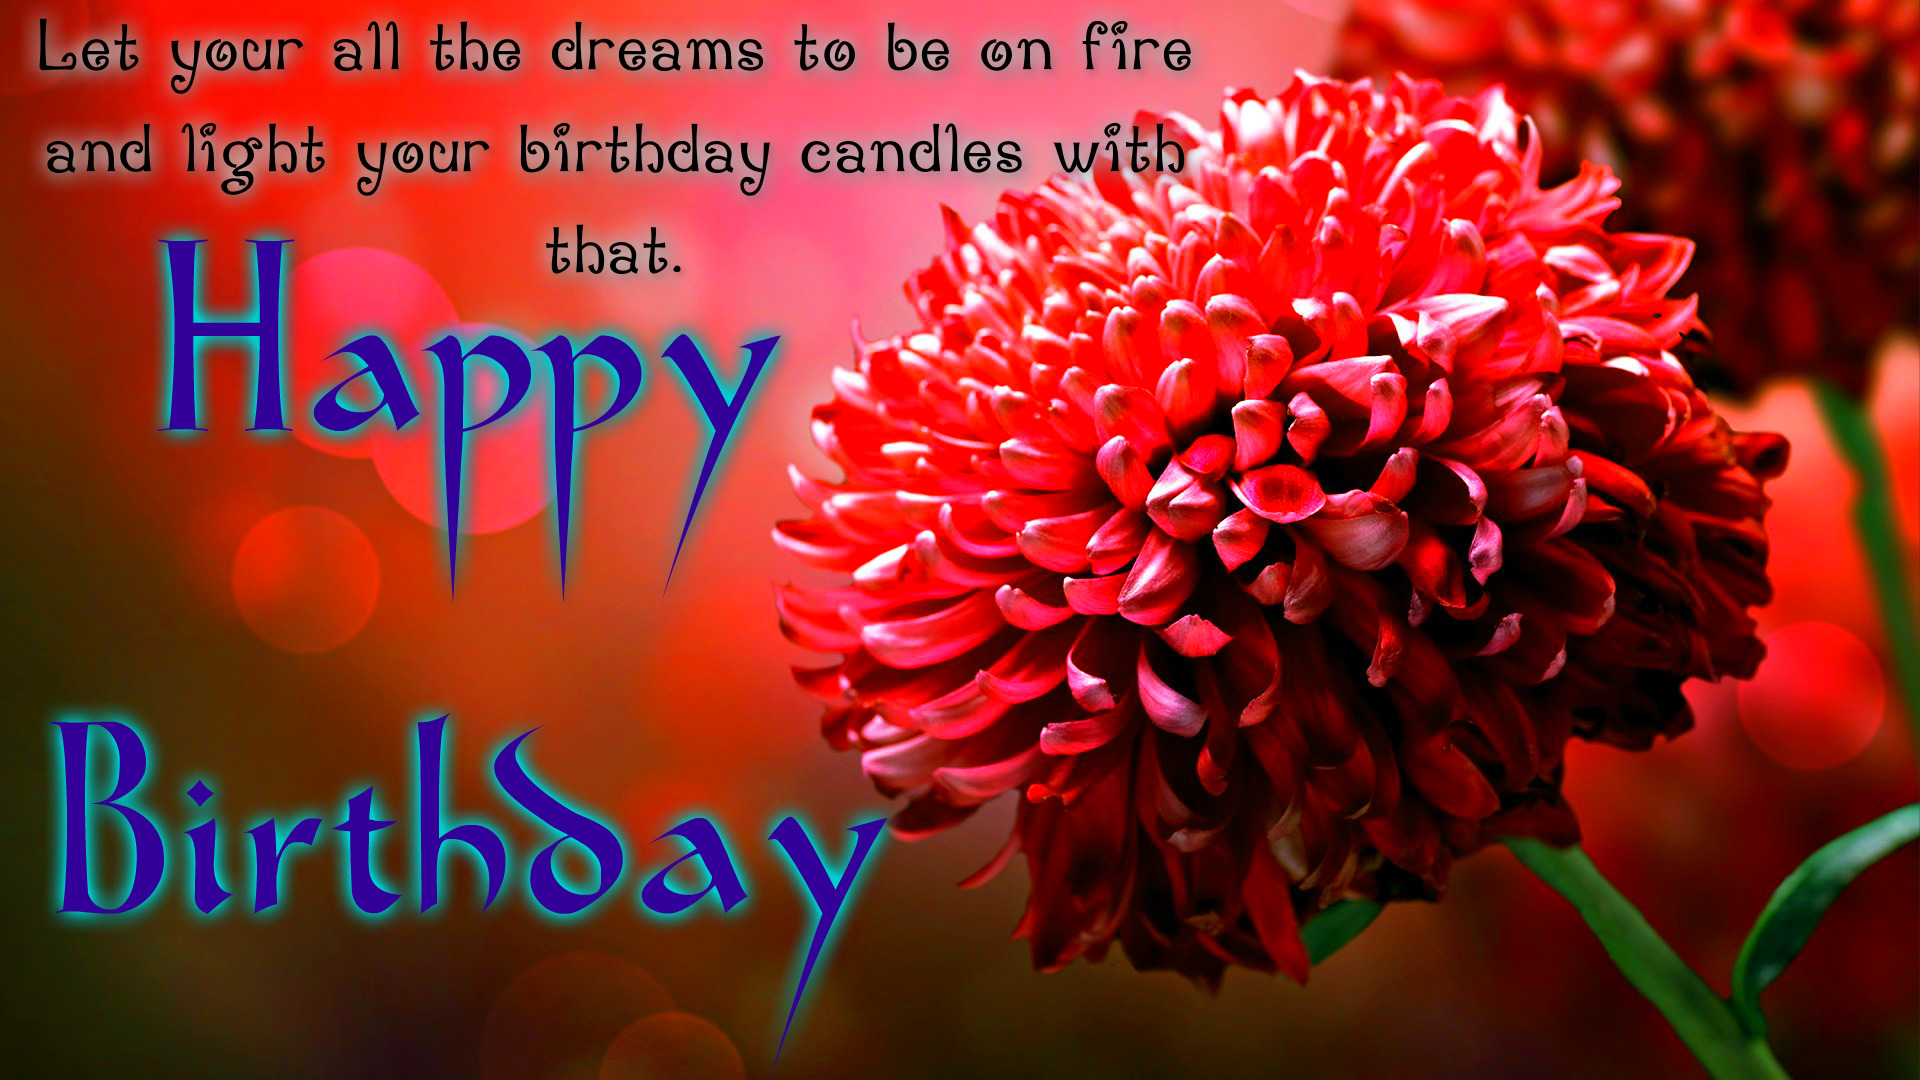 happy birthday wishes hd images free download ; Happy-Birthday-Flowers-2